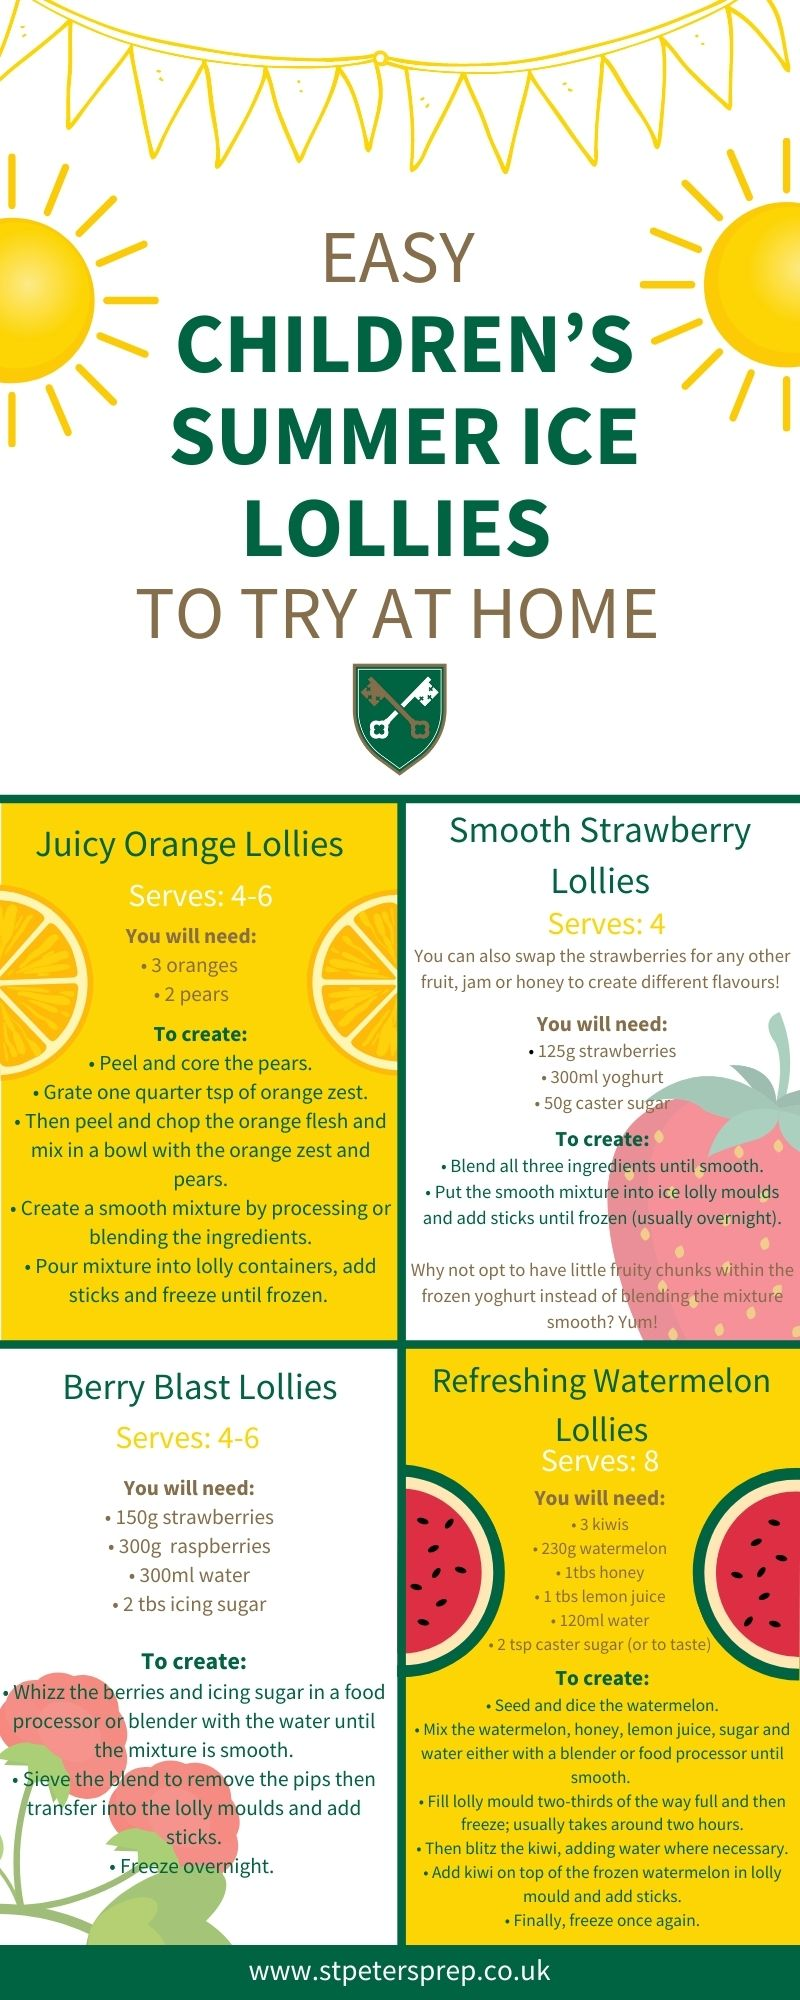 Easy Children's Summer Ice Lollies to Try at Home Infographic